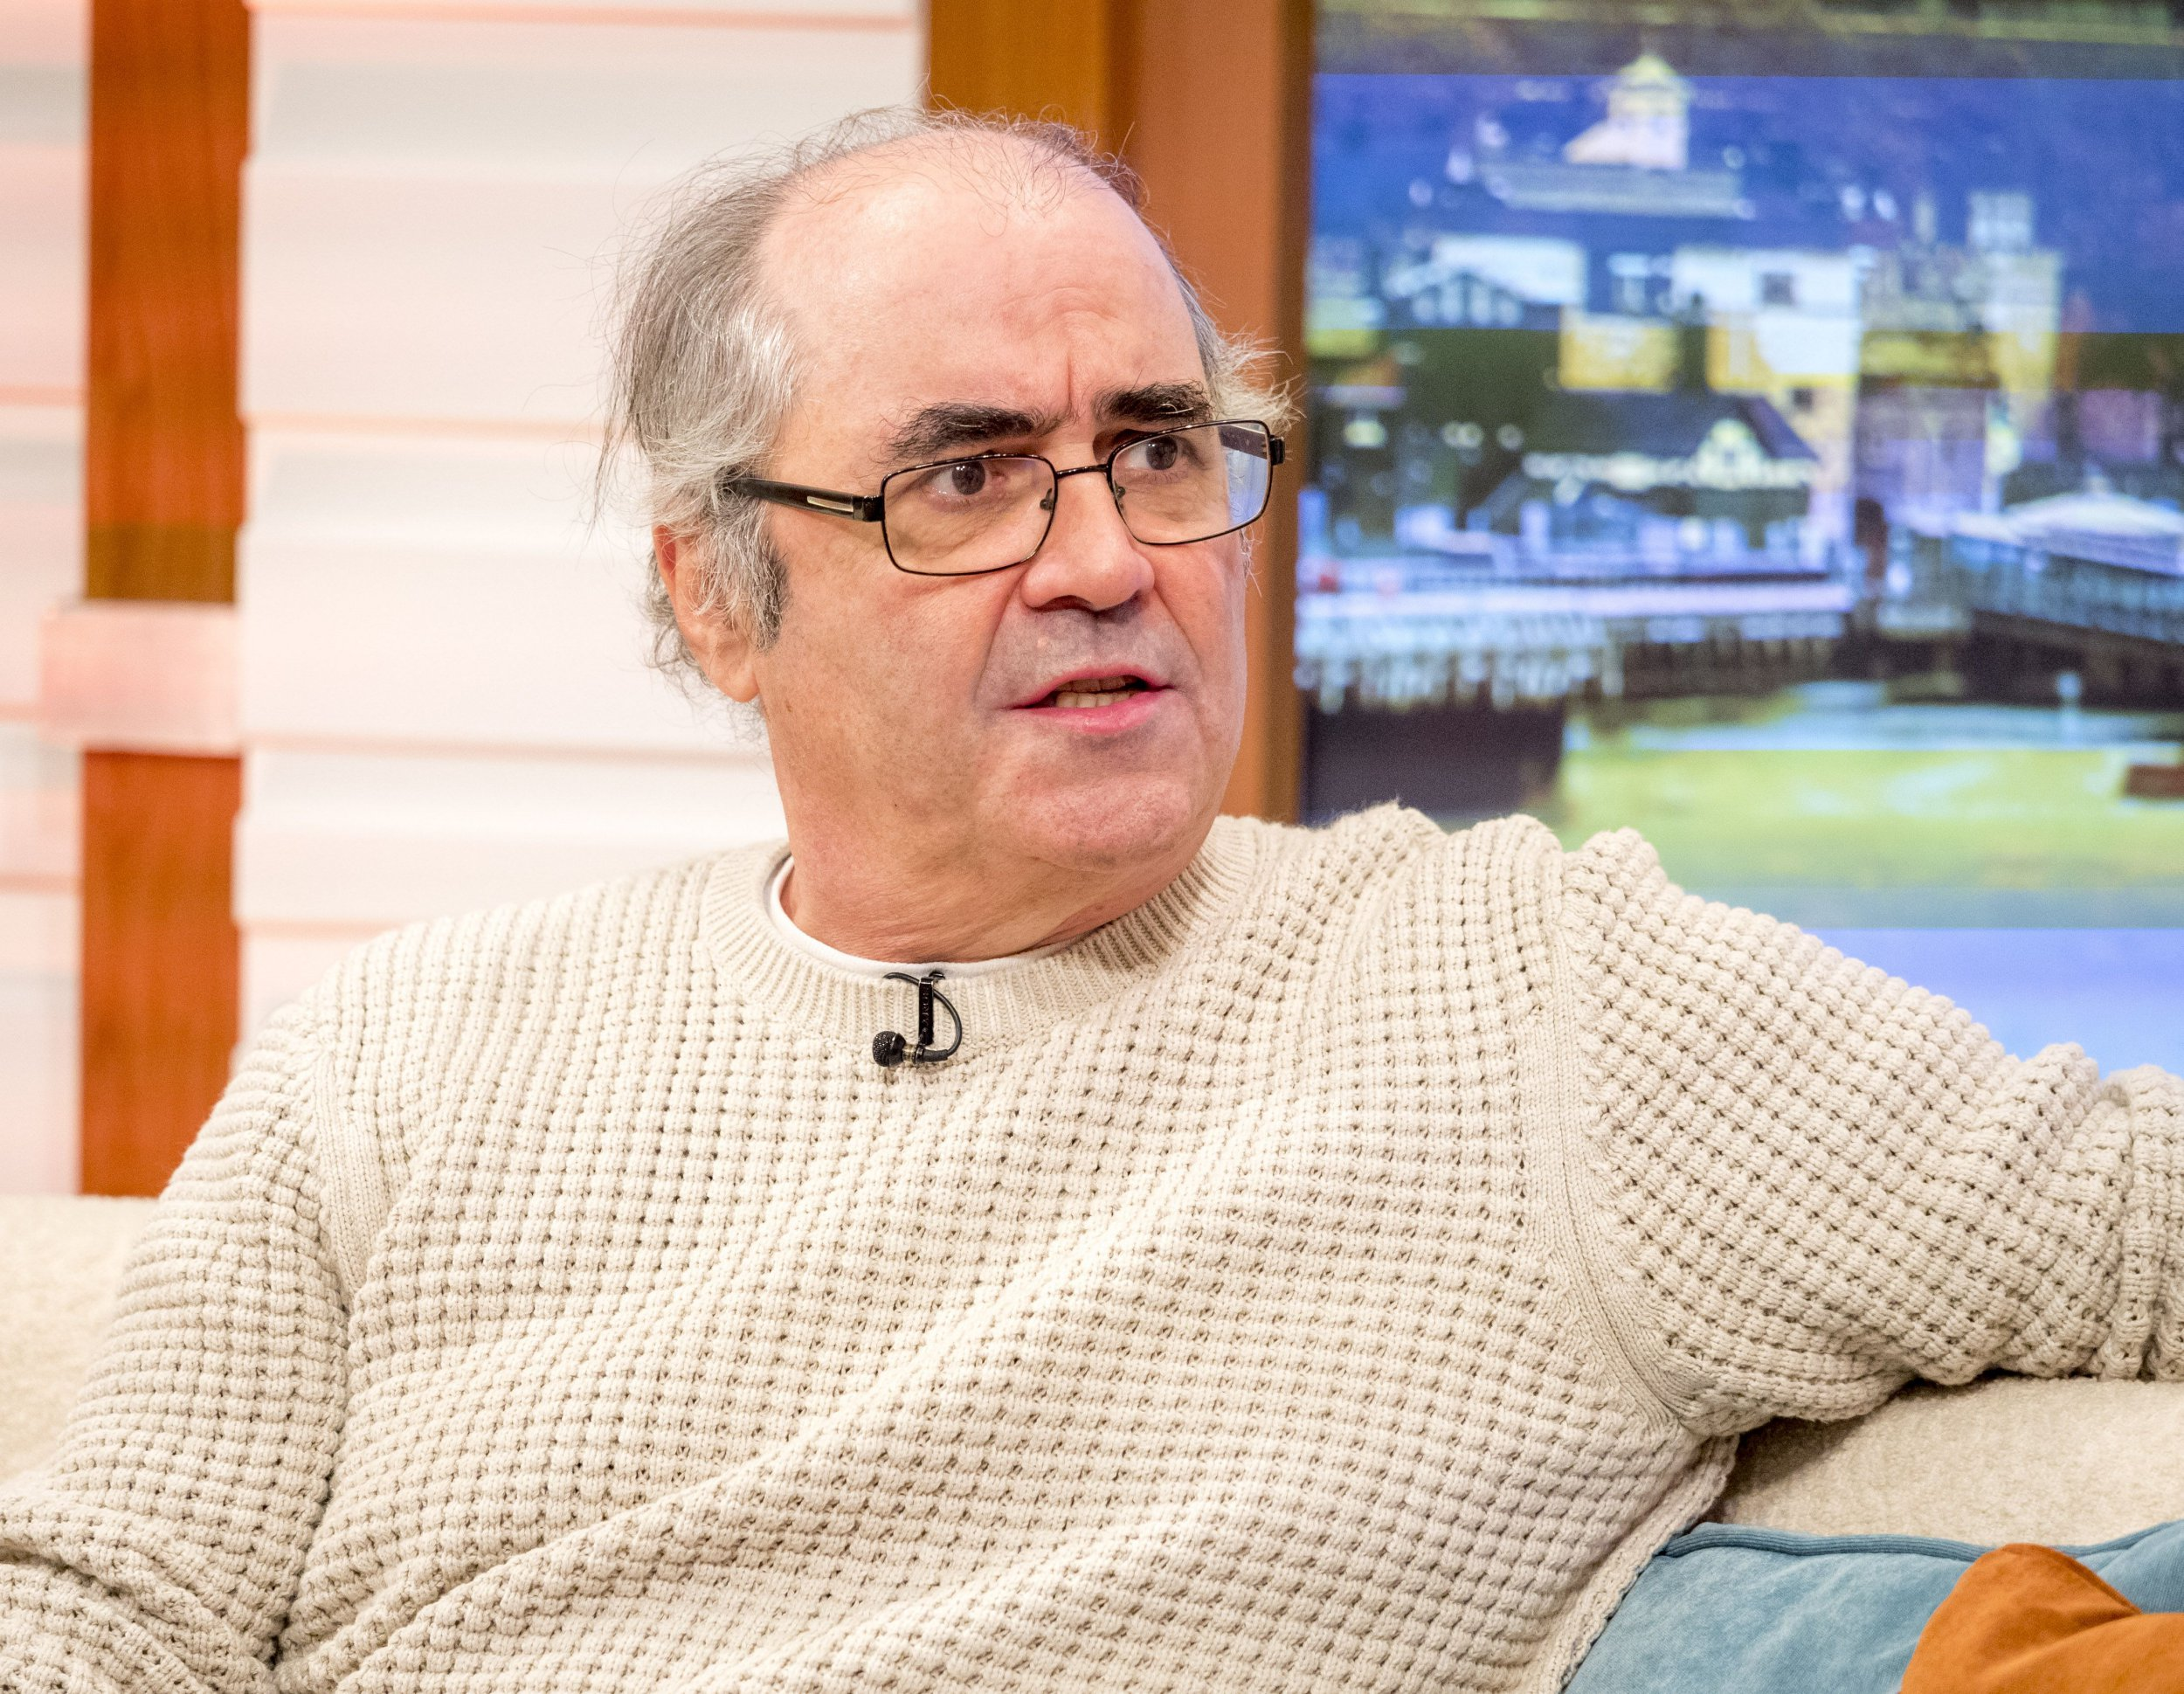 Editorial use only Mandatory Credit: Photo by Ken McKay/ITV/REX/Shutterstock (9125484ae) Danny Baker 'Good Morning Britain' TV show, London, UK - 10 Oct 2017 DANNY BAKER He's the geezer with an appetite for gossip, so expect lots when Danny pops in to talk about his new book Going On The Turn, battling cancer and the second series of his hit sitcom, Cradle to Grave. * ULAYS: Best of Danny Baker * SOFA: Danny Baker on the sofa